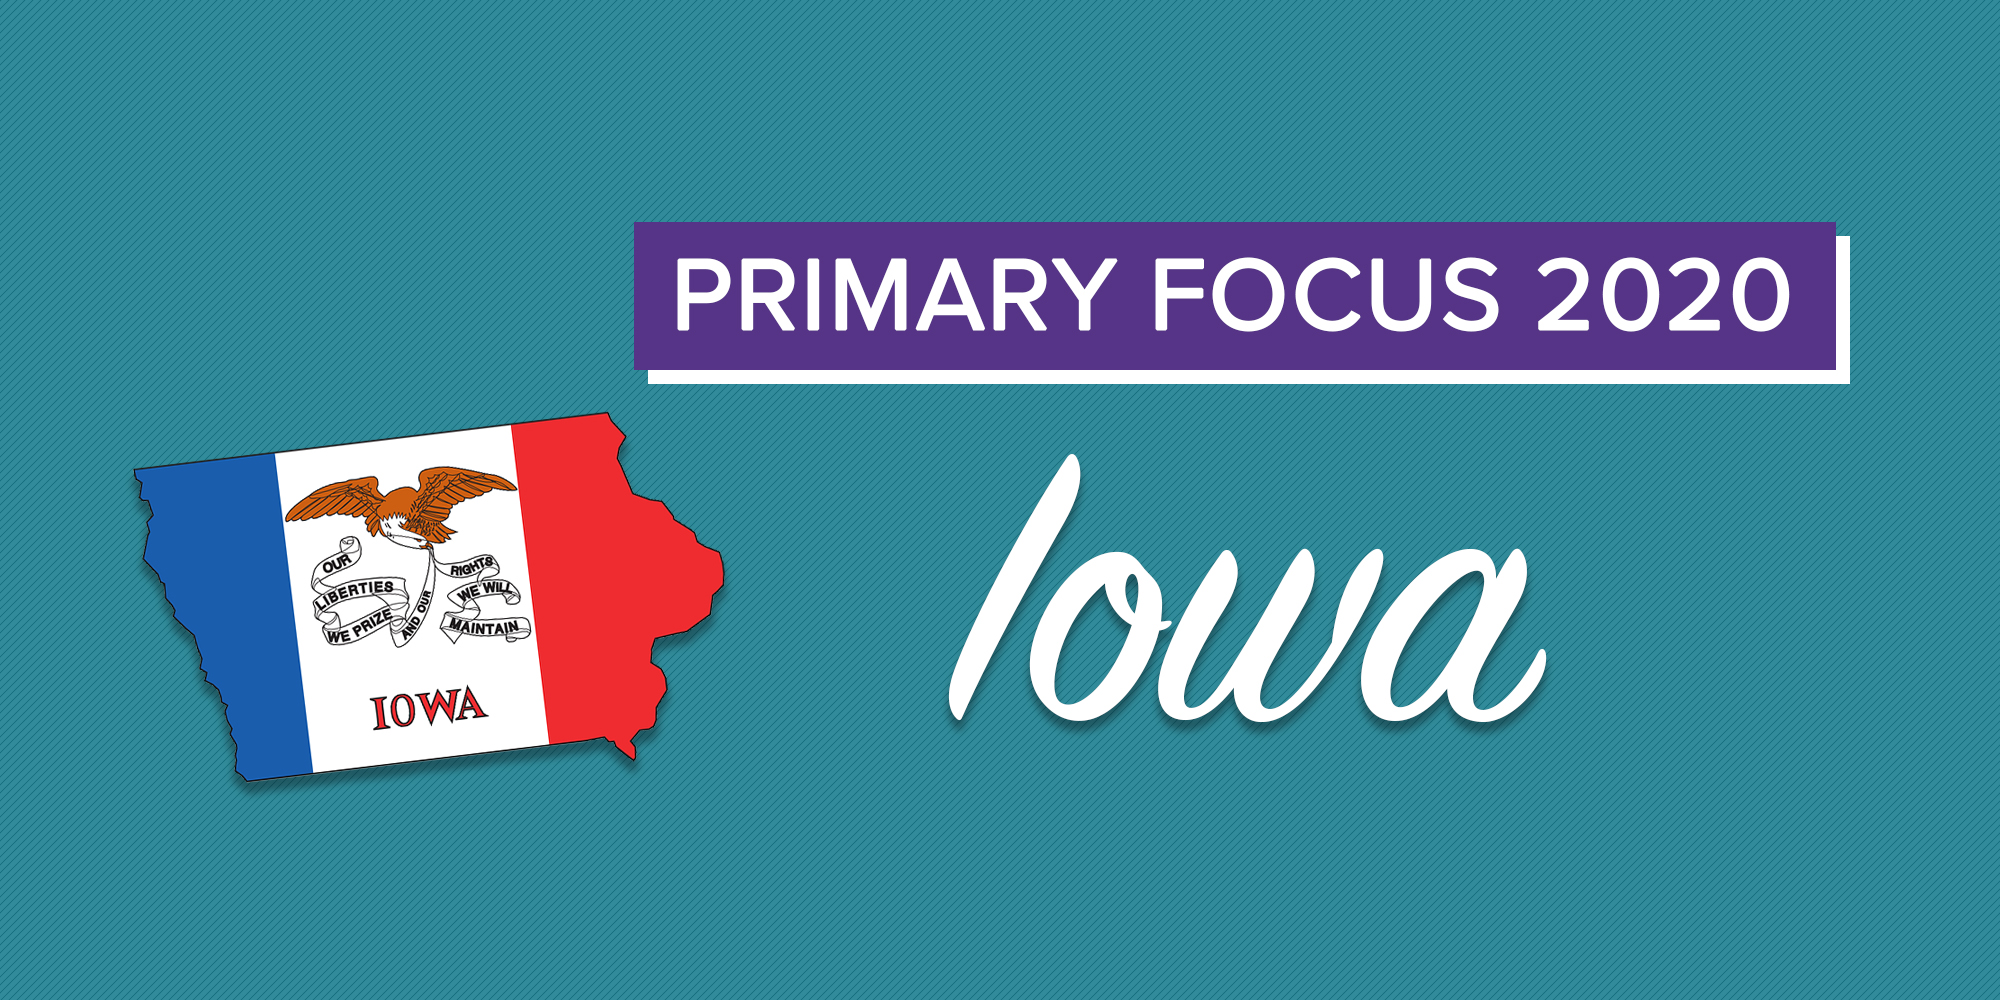 Primary Focus 2020: What Do The Iowa Caucuses Have In Common With Papua New Guinea?